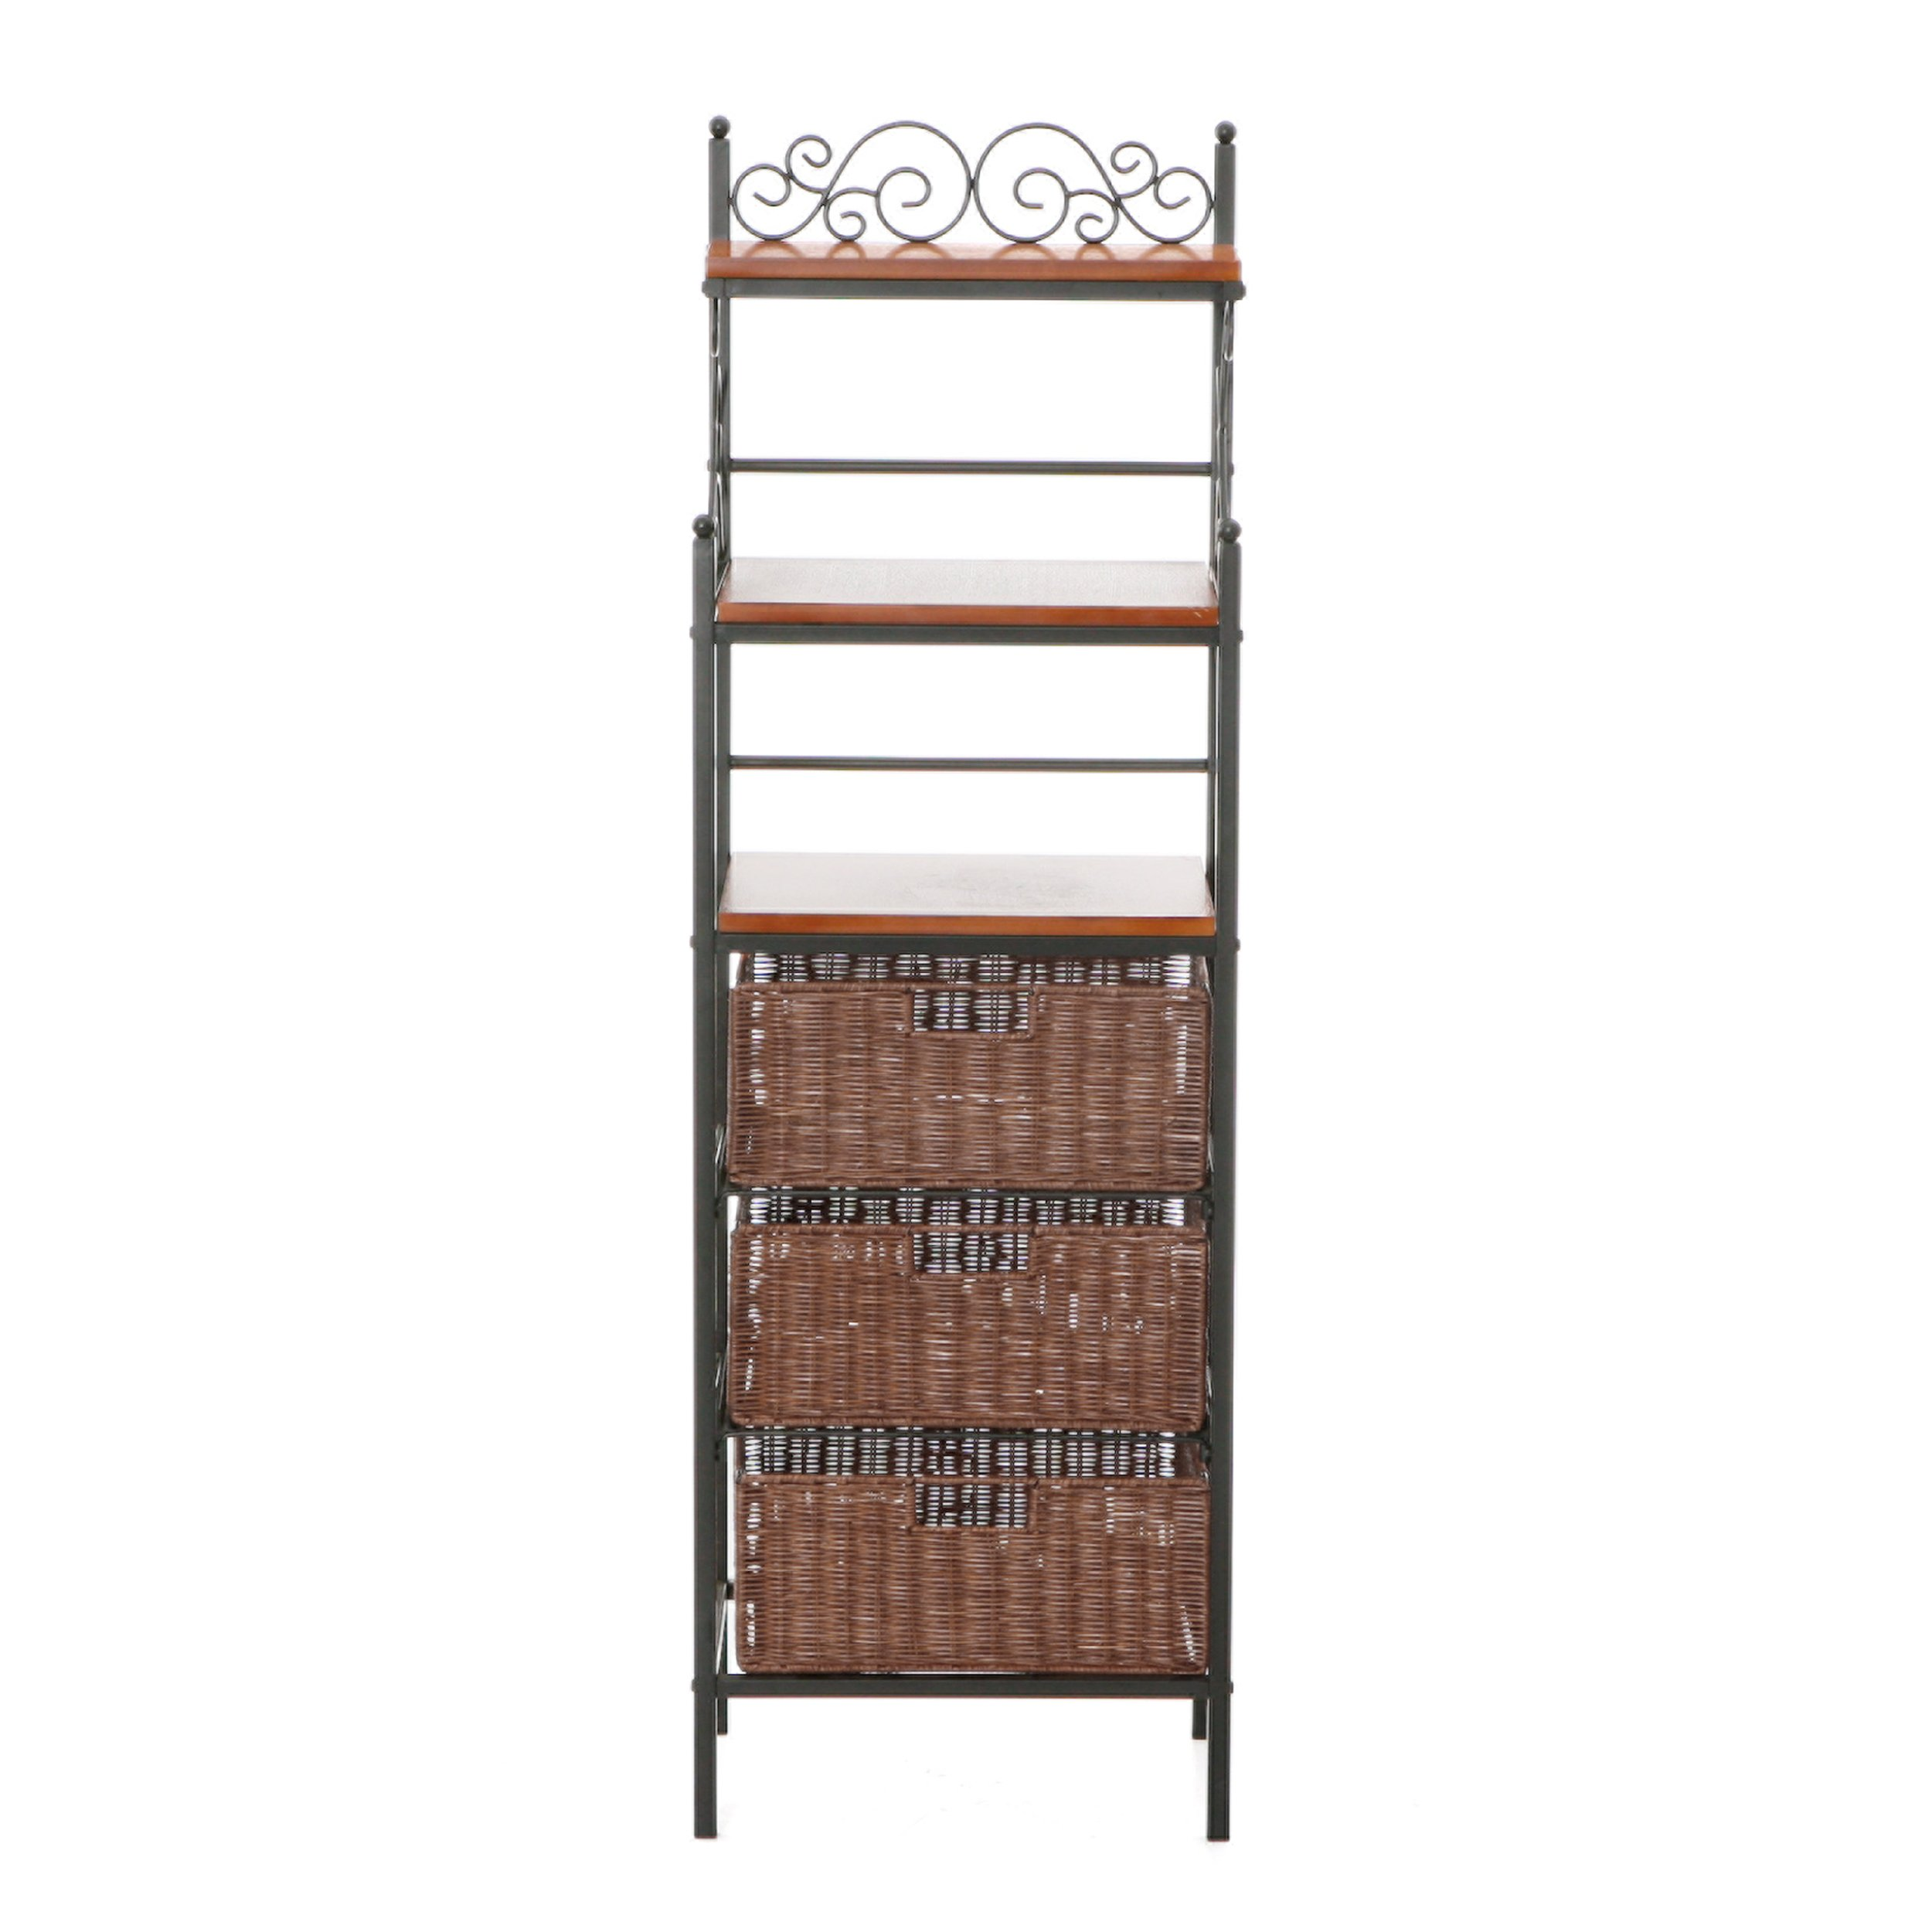 Manilla Bakers Rack - 3 Drawer w/ Woven Baskets - Wood w/ Black Metal Frame by Southern Enterprises